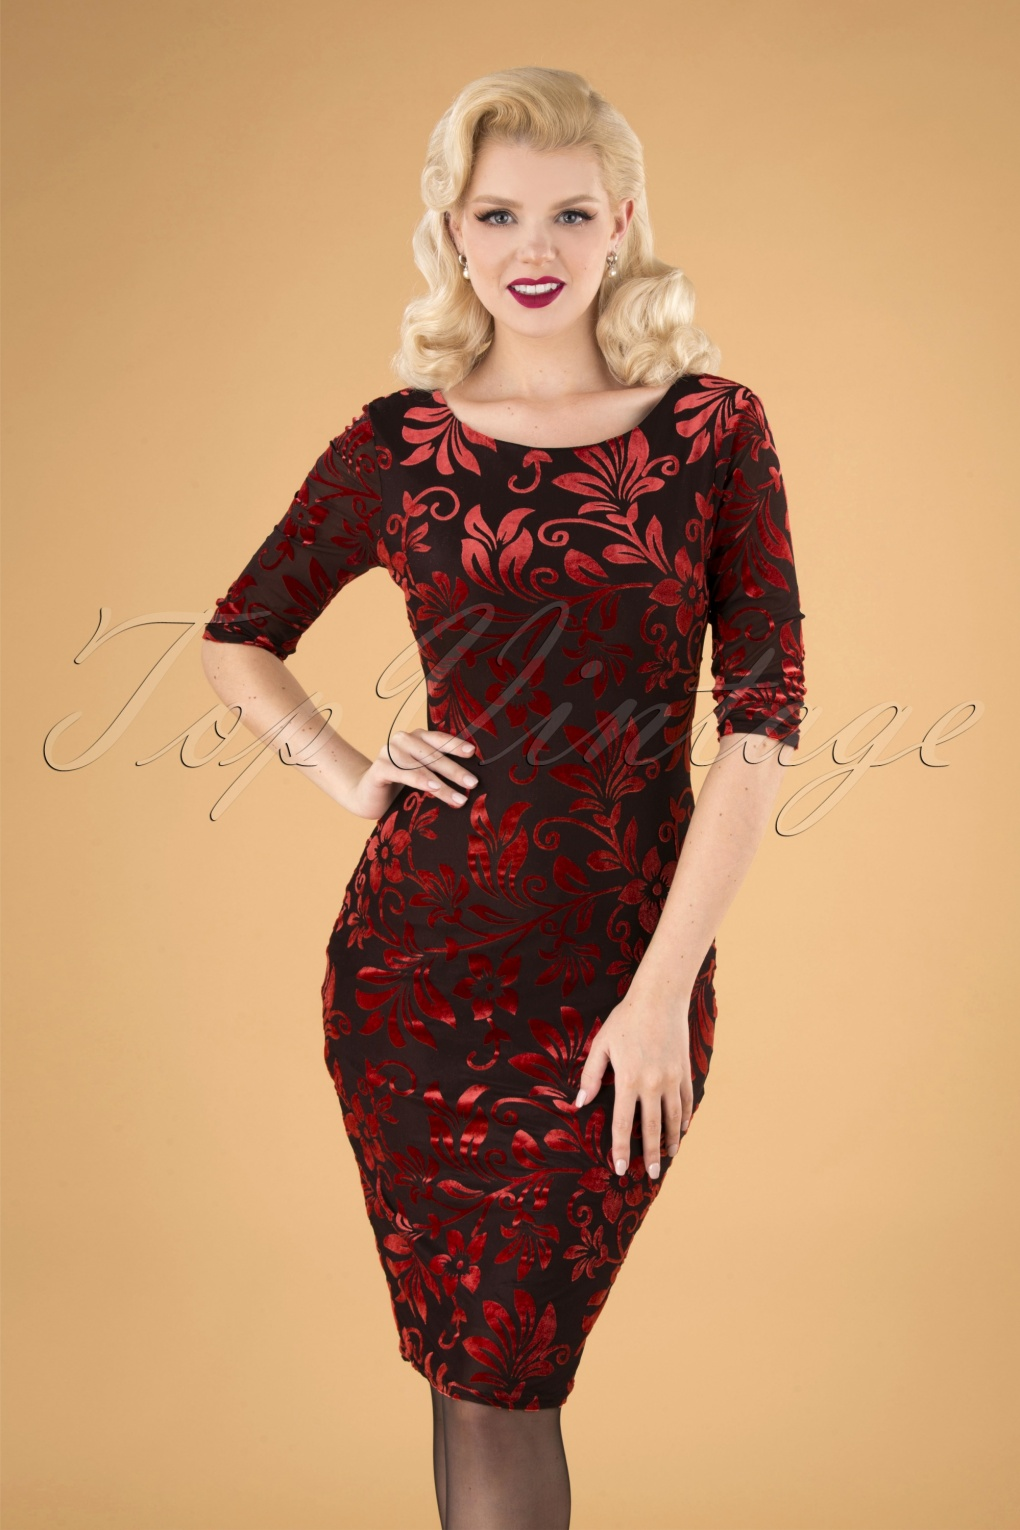 Wiggle Dresses | Pencil Dresses 40s, 50s, 60s 50s Deanna Floral Pencil Dress in Brown and Red £41.63 AT vintagedancer.com